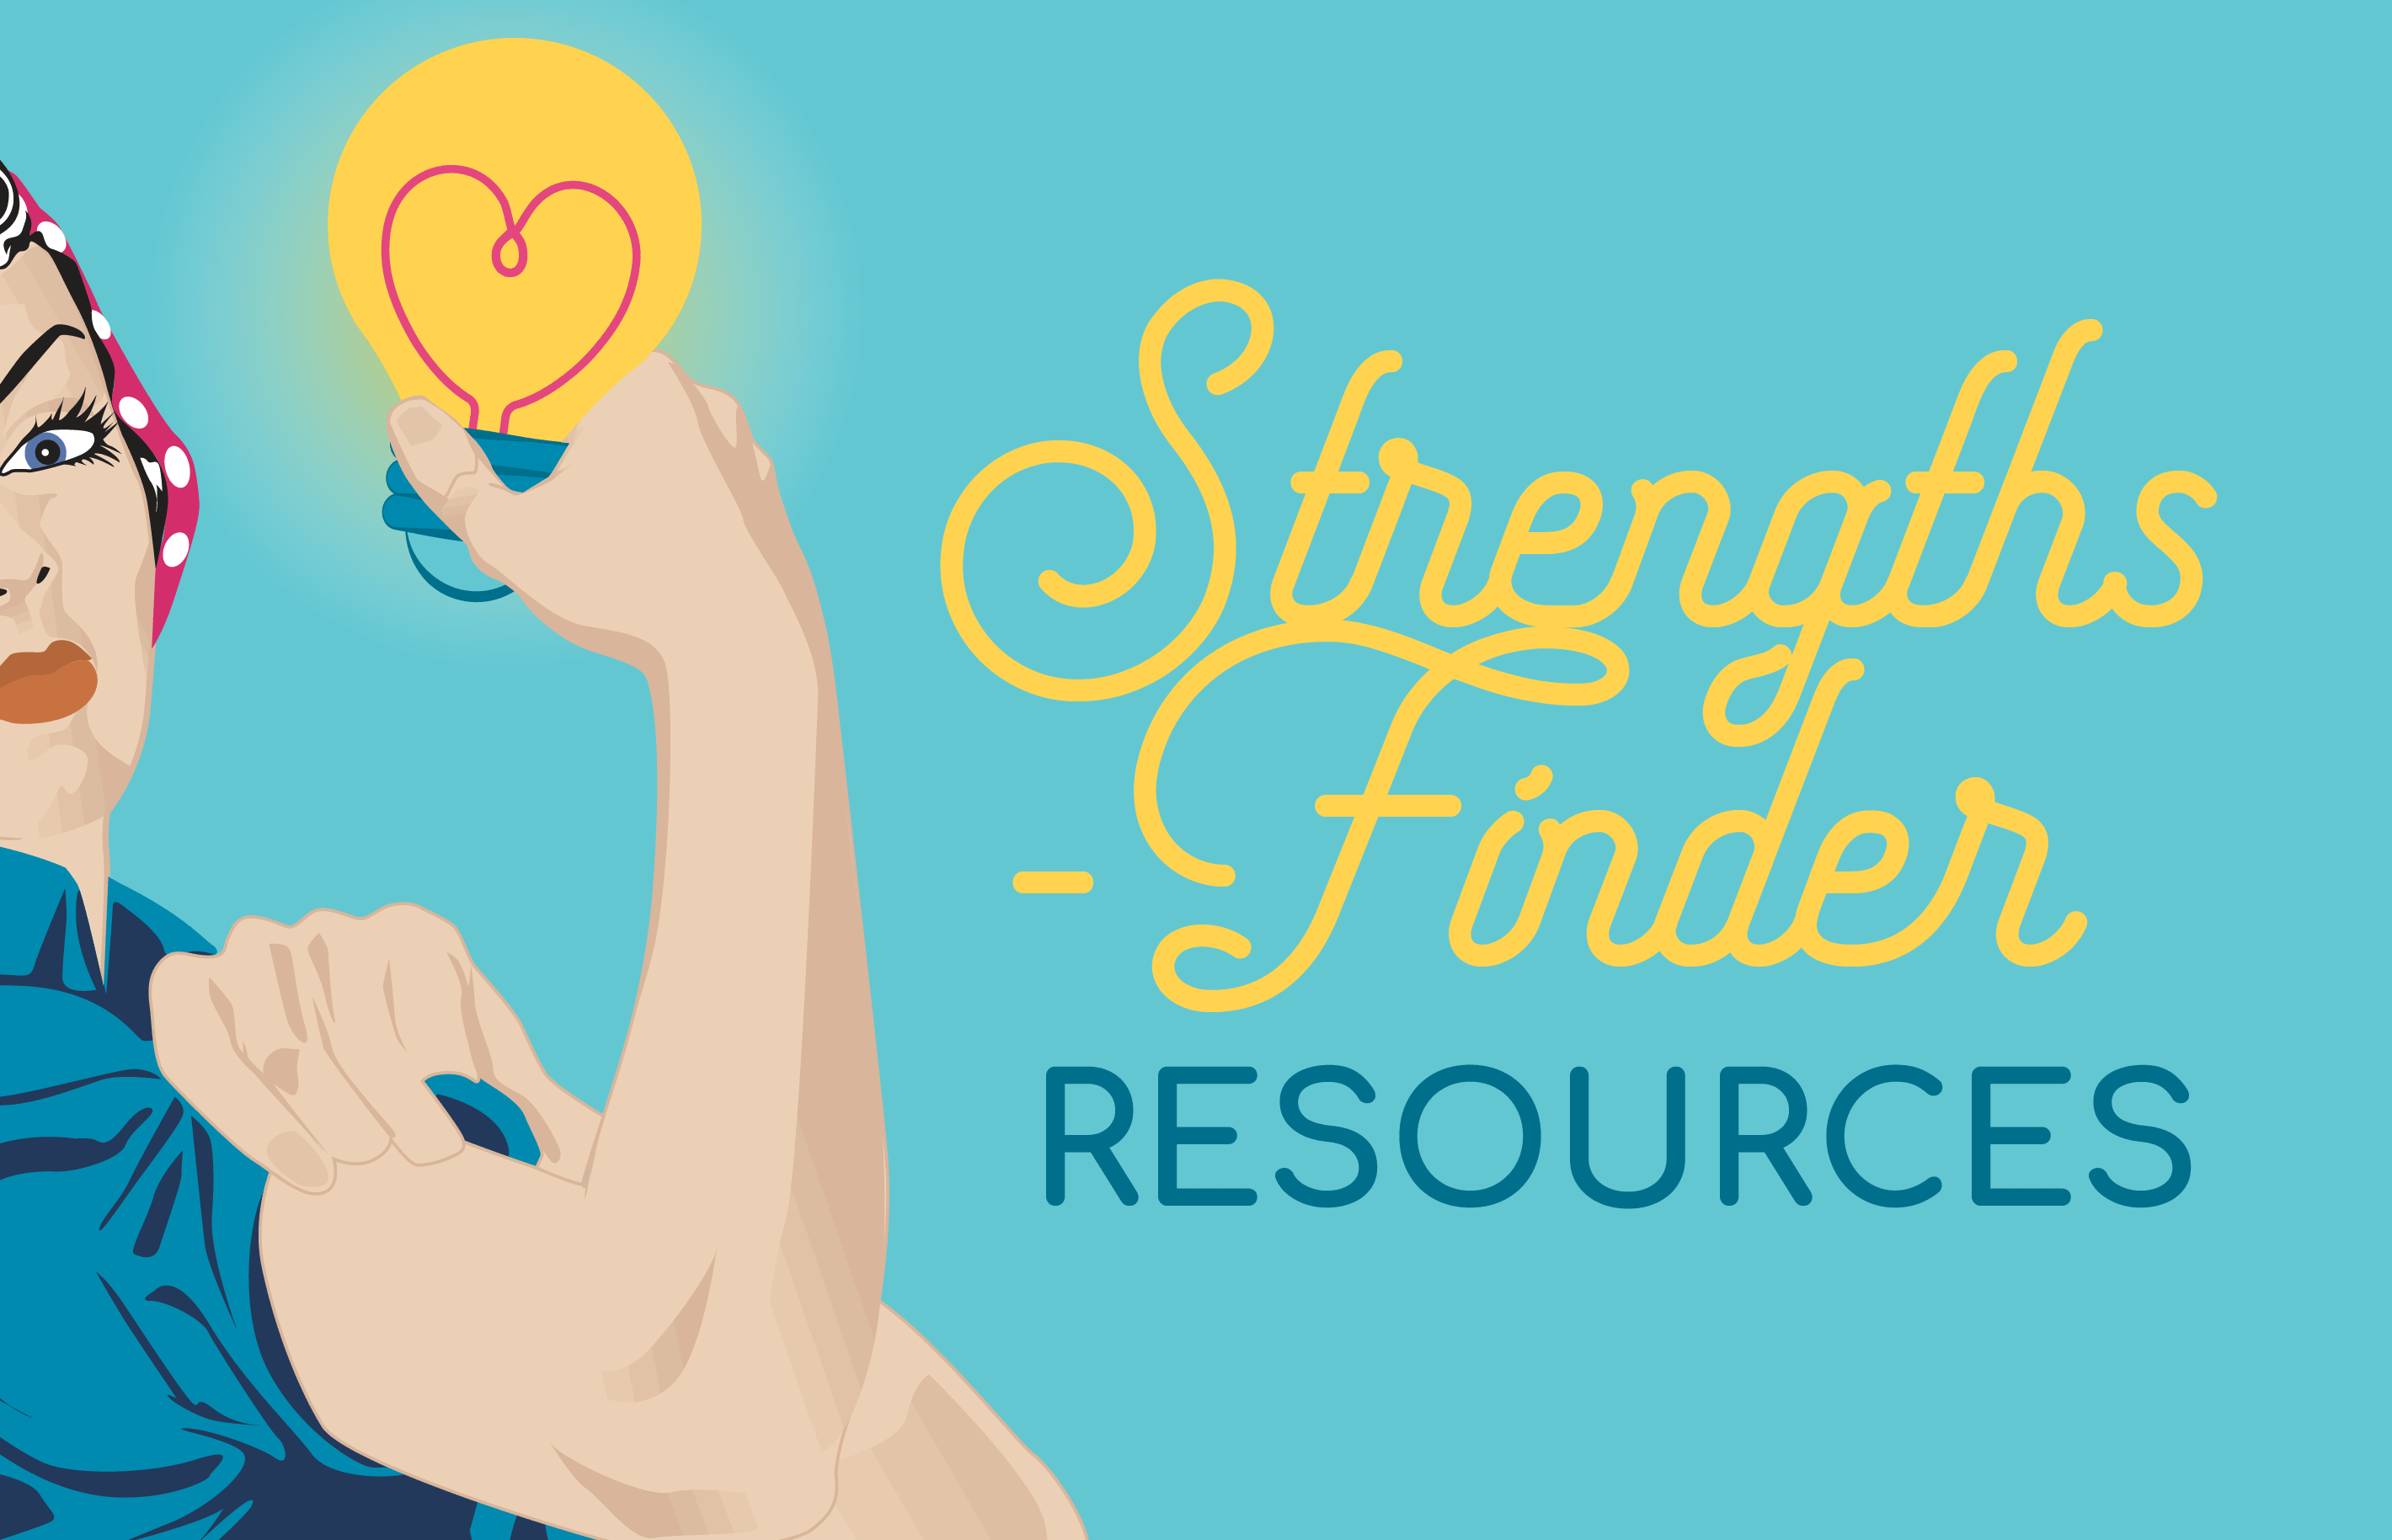 Strengths-Finder Resources